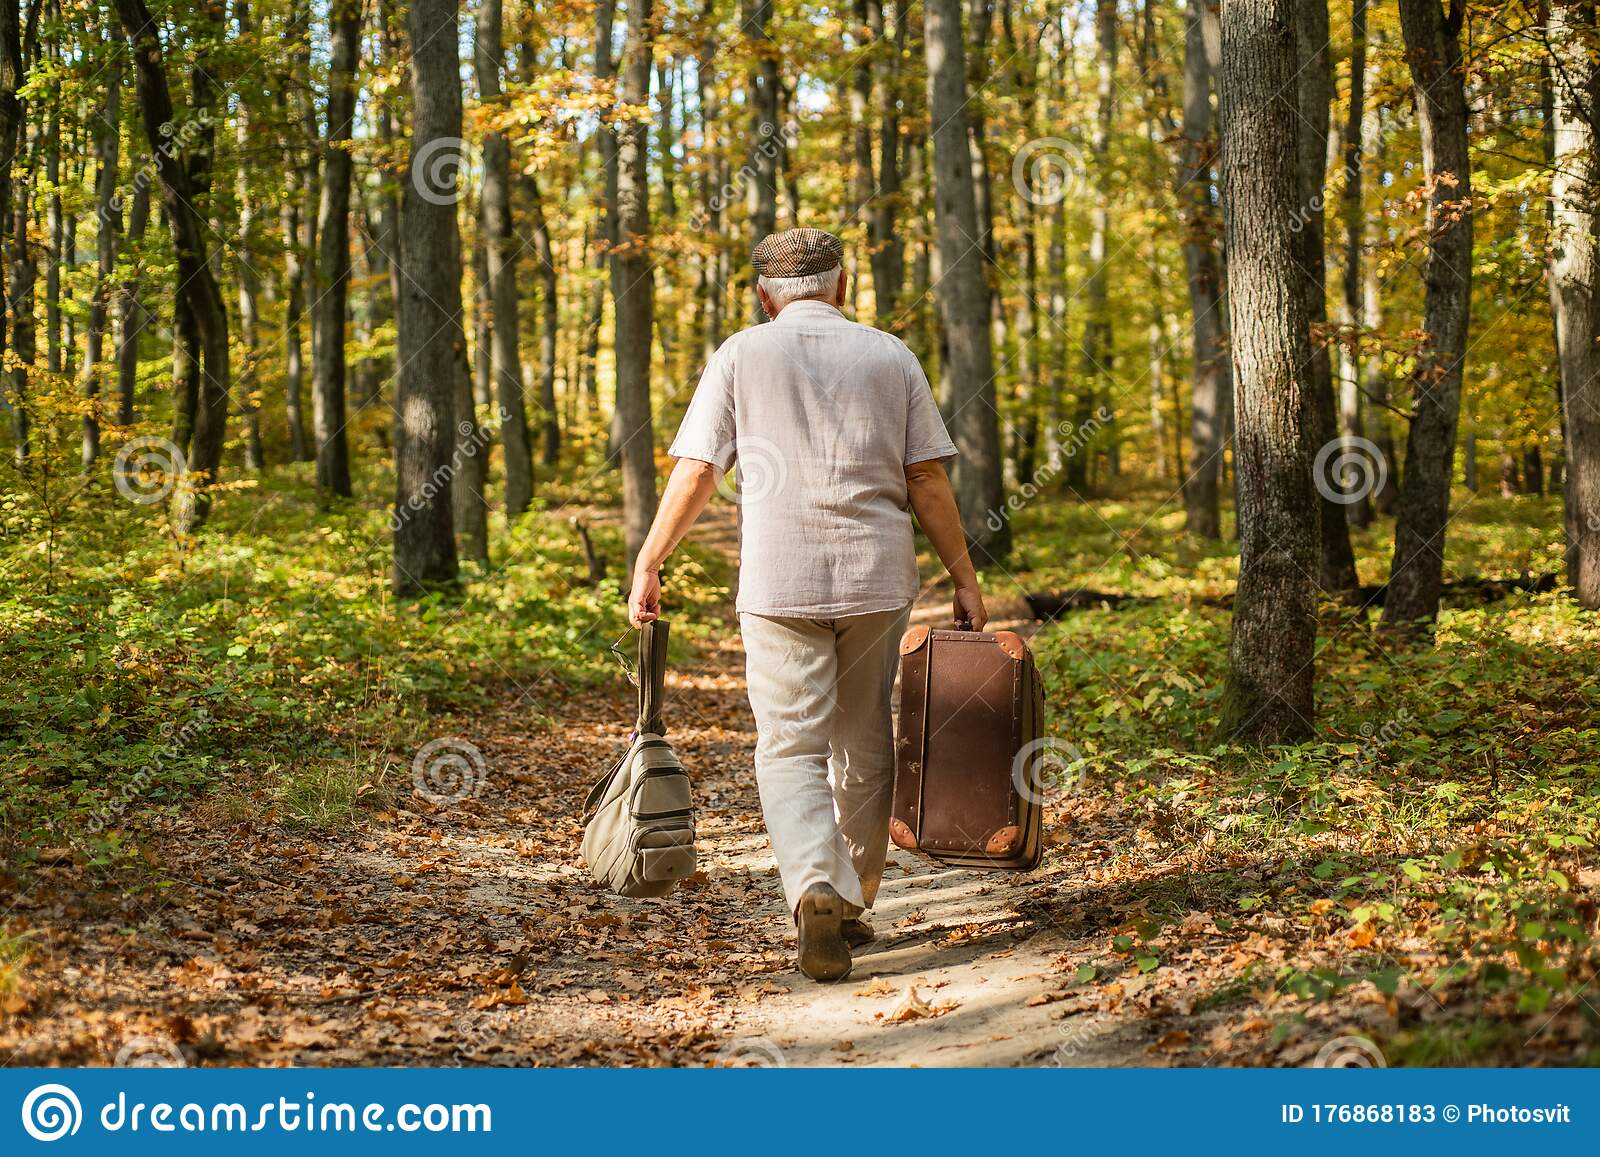 Old Man Walk With Suitcase Retirement Concept Old Man Carry Travel Bag In Woodland Elderly Person Travel Through Stock Image Image Of Tour Elderly 176868183